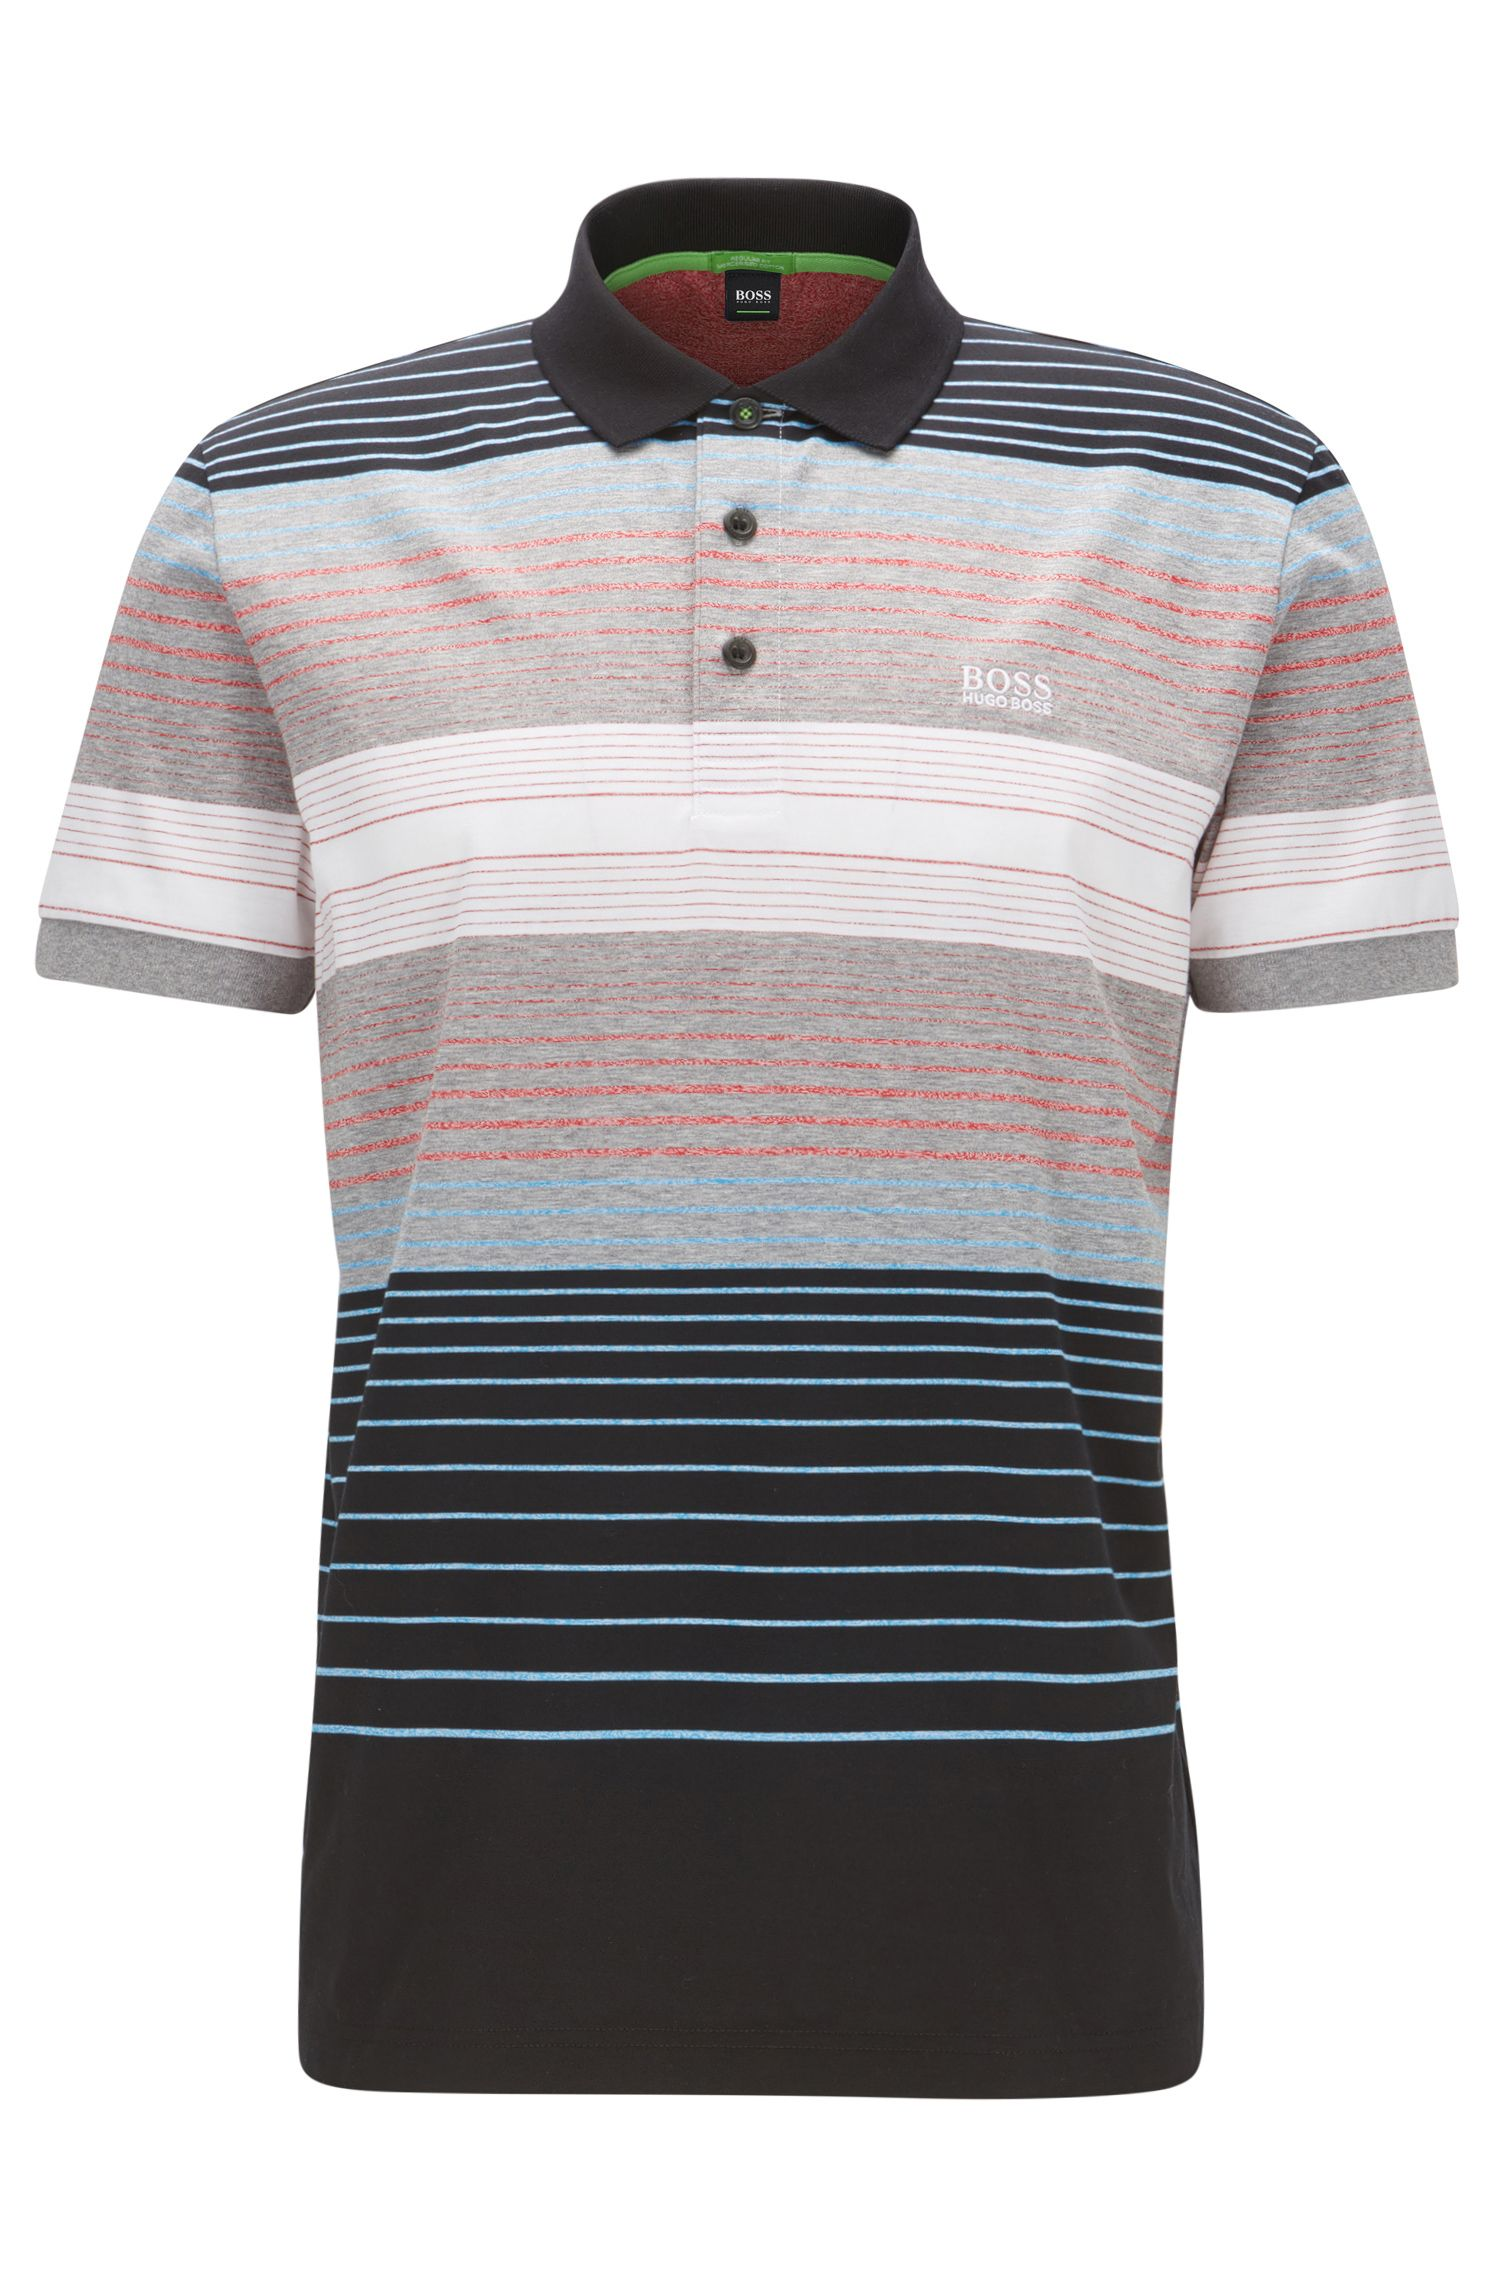 Striped Colorblocked Cotton Polo Shirt, Slim Fit | Paddy